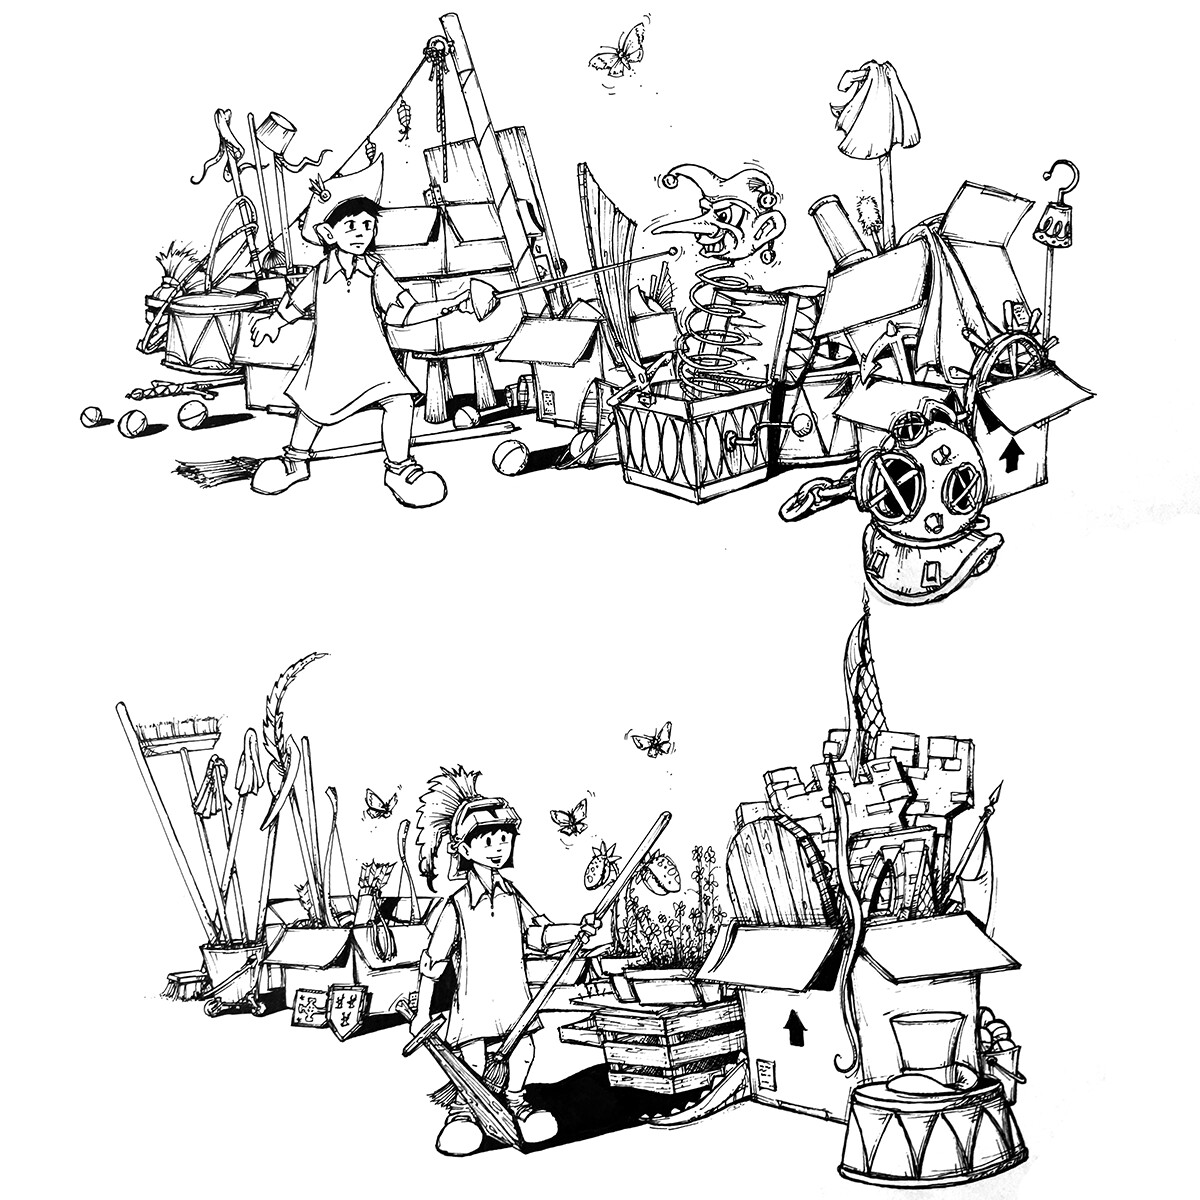 The original concept drawings I did years back